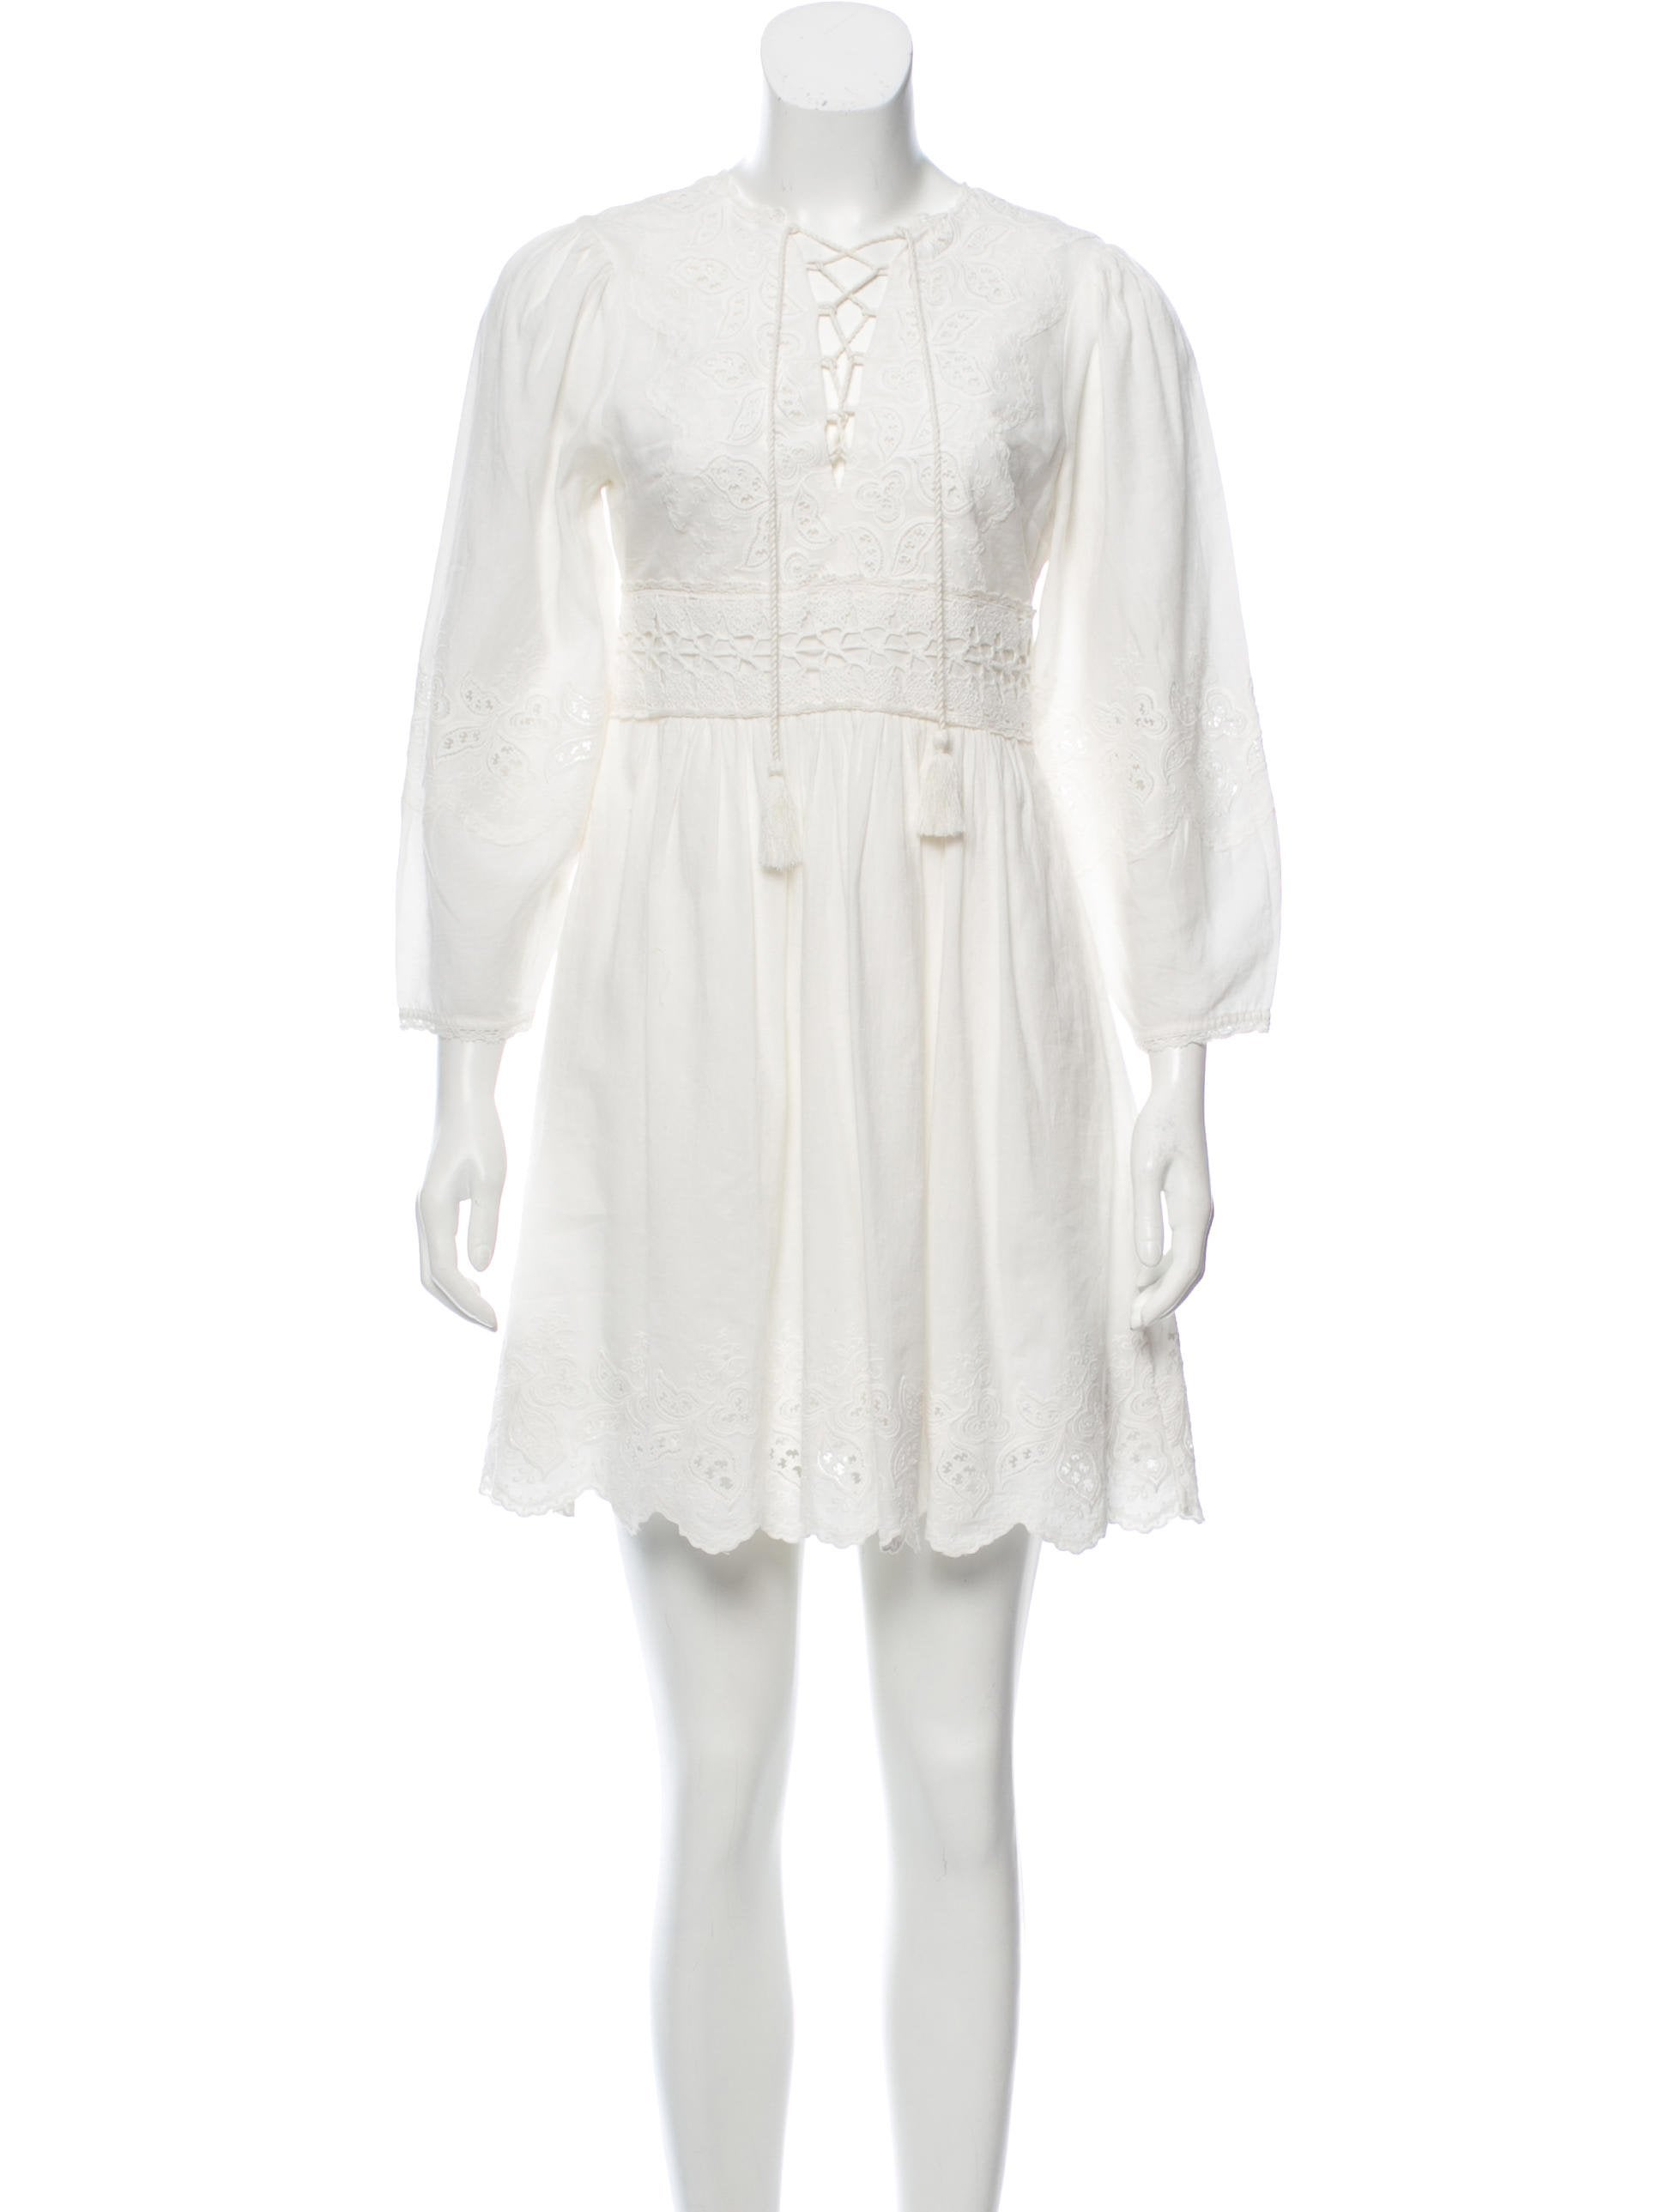 fcd3599403557a Ulla Johnson Ailey Broderie Anglaise Dress w/ Tags - Clothing ...